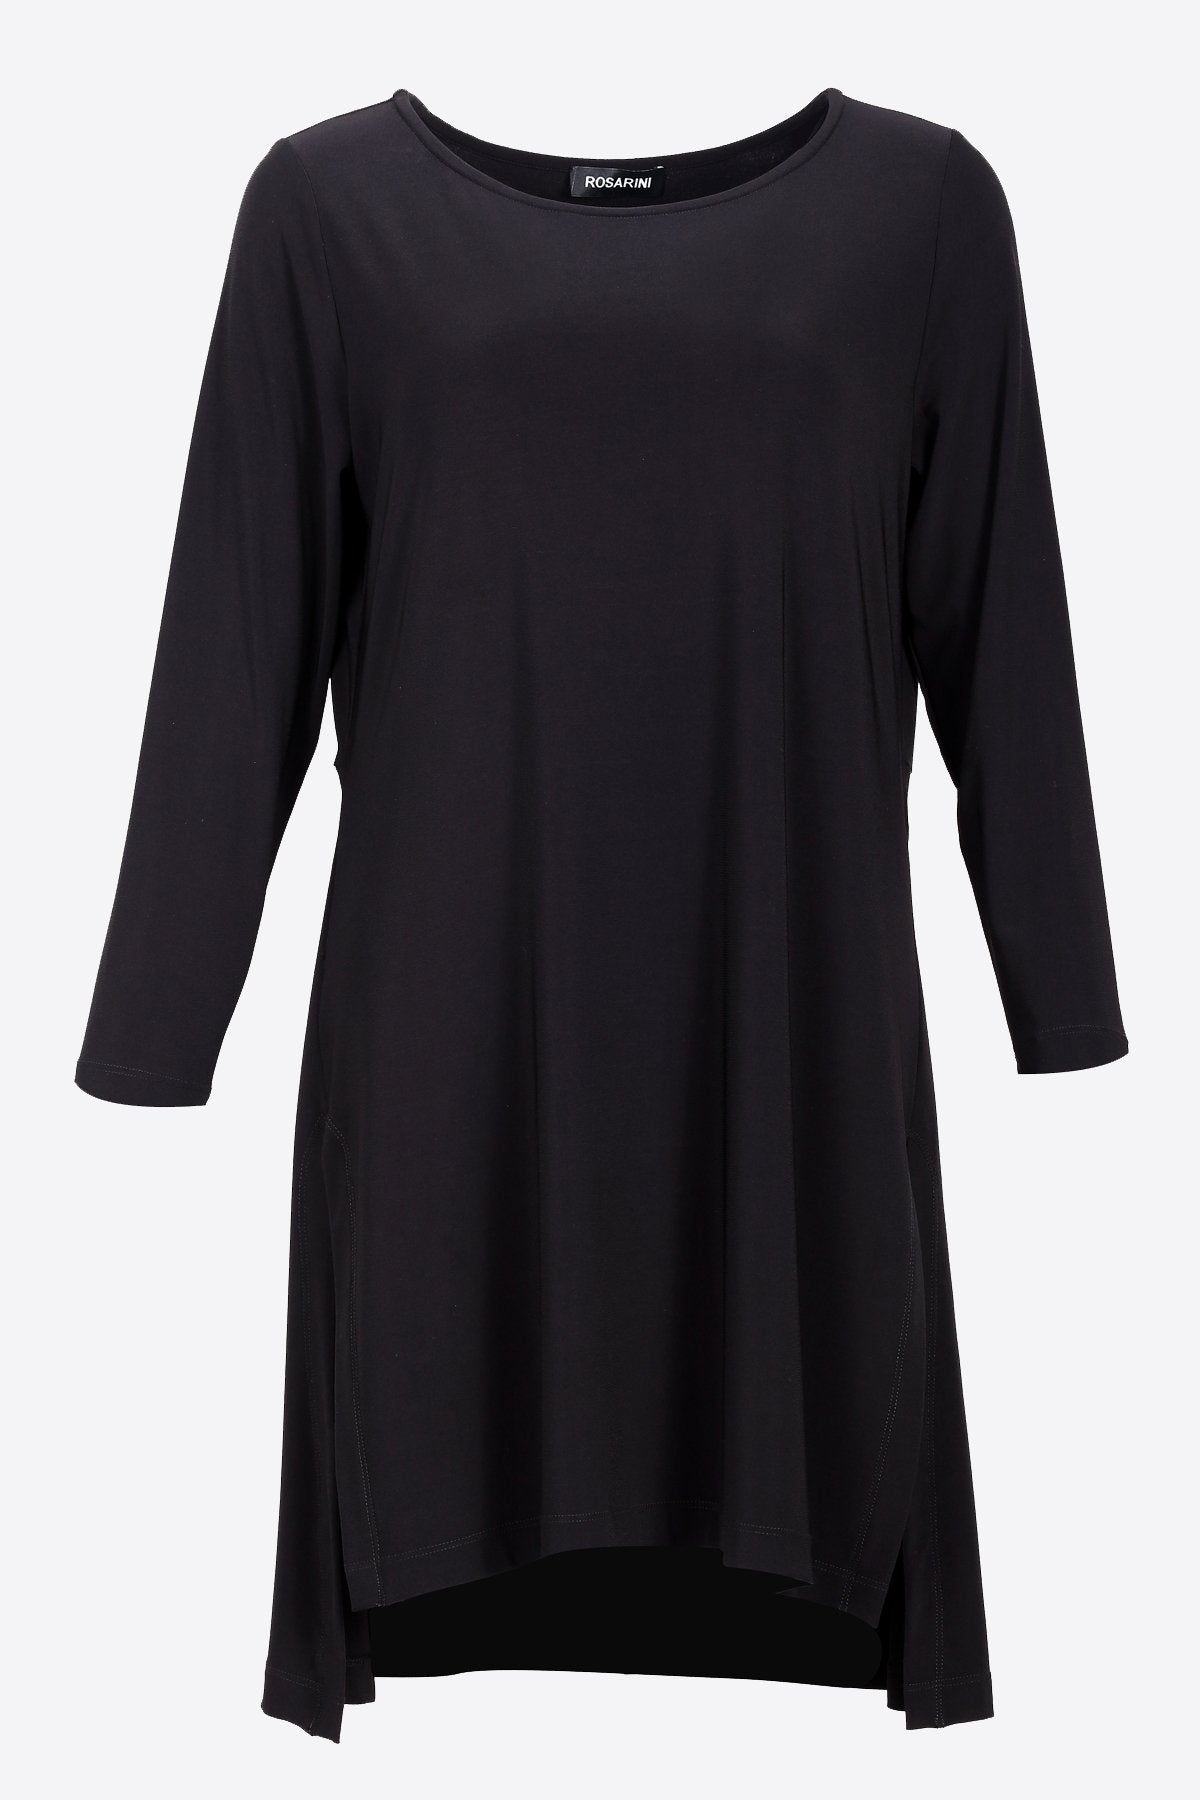 HI LOW SIDE SPLIT TUNIC black